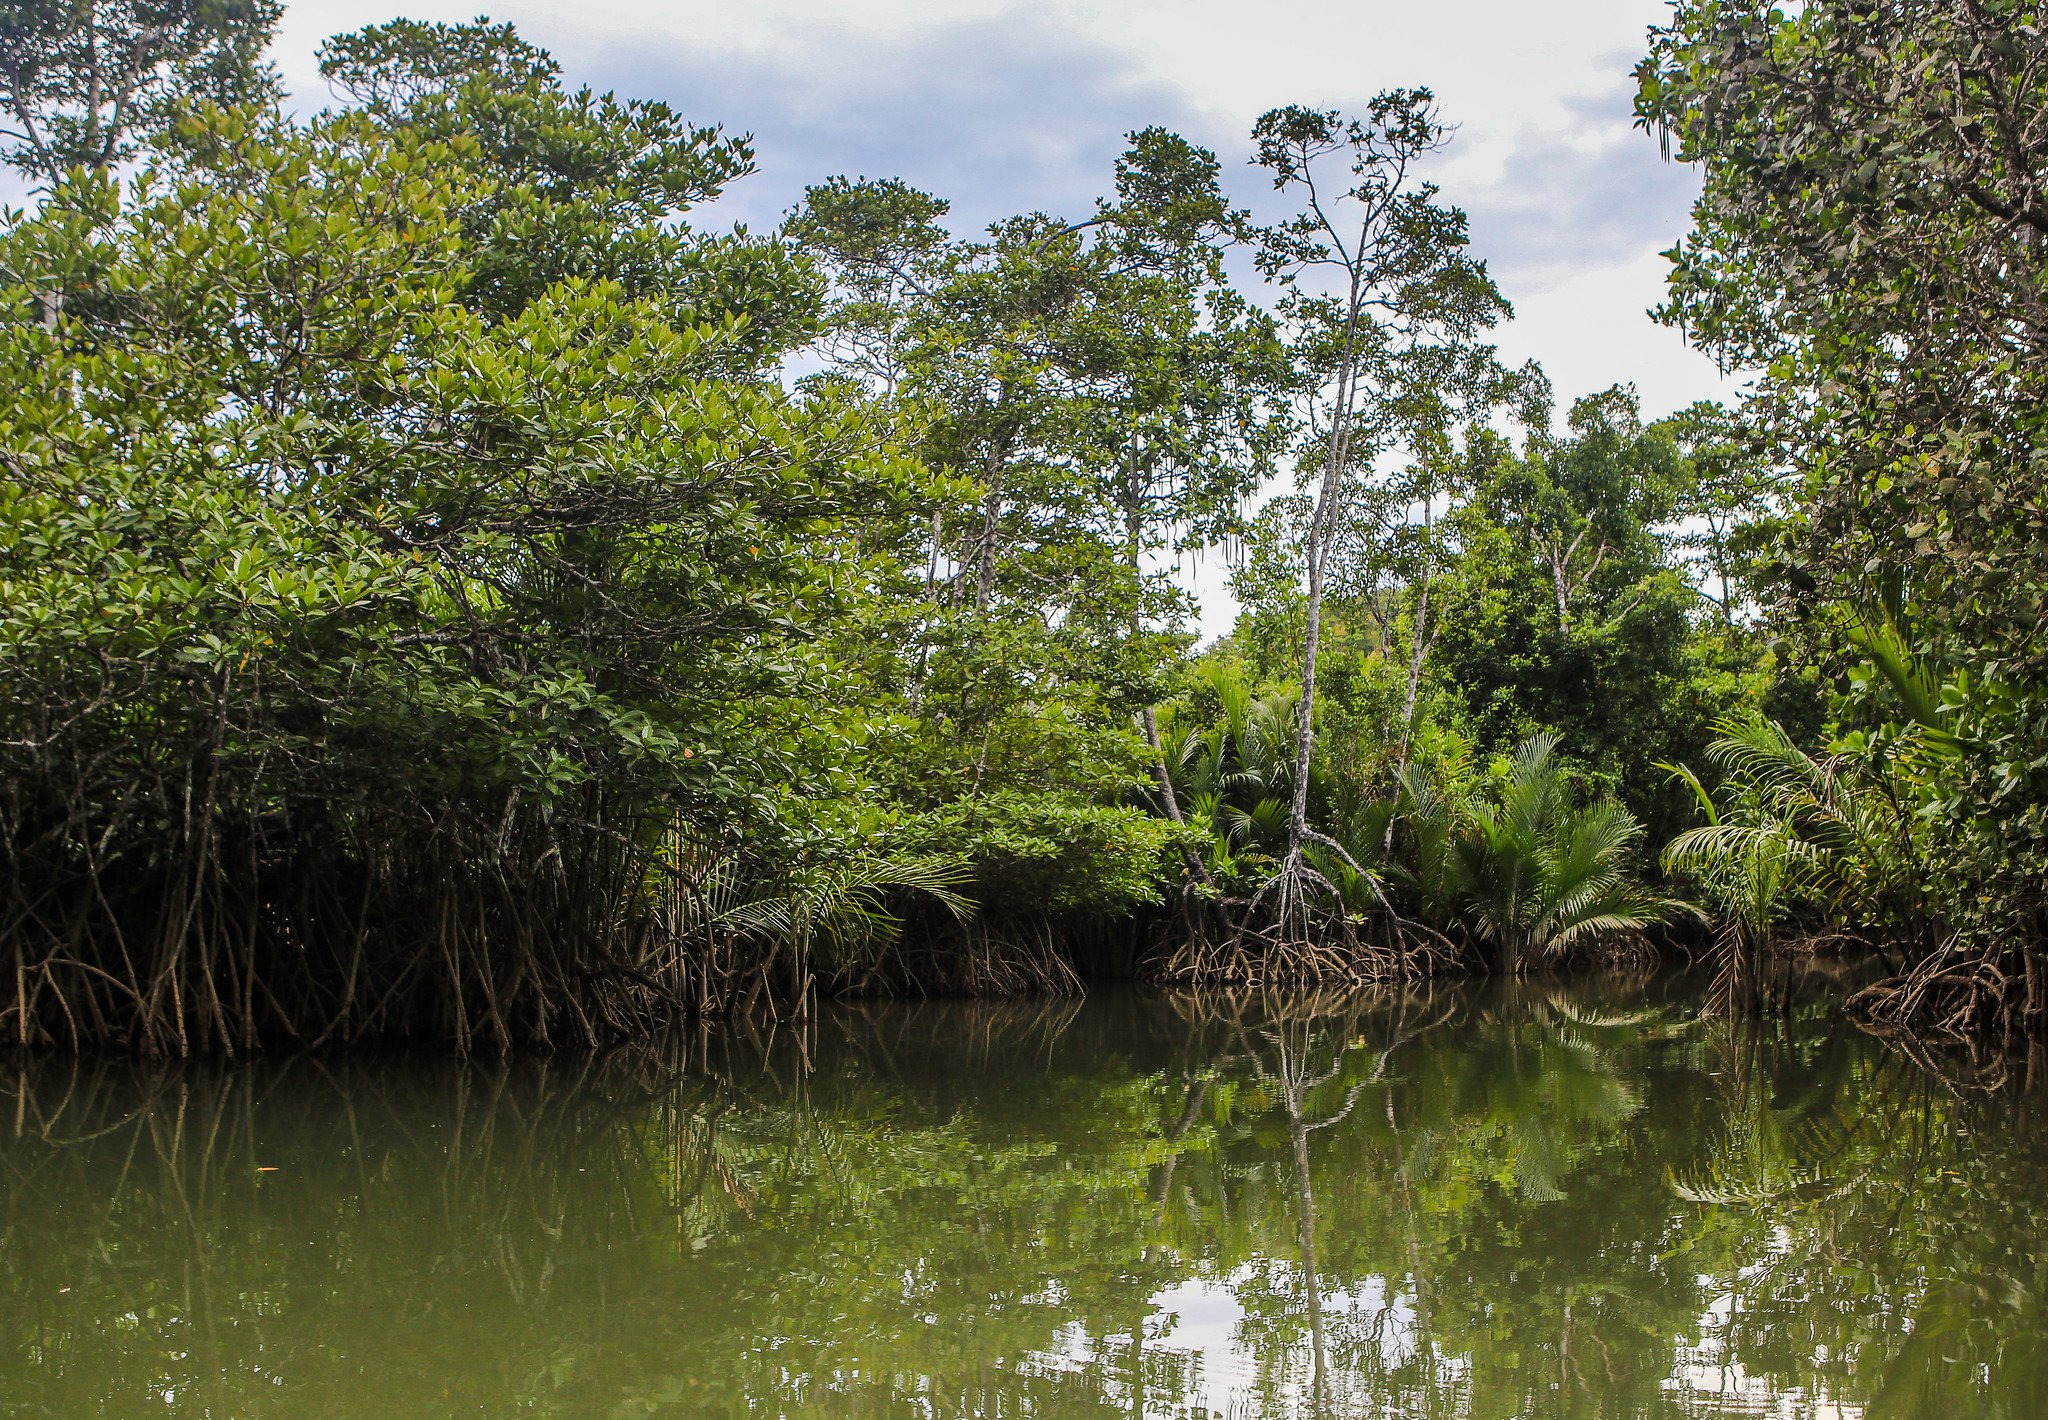 Mangrove forest in the Philippines